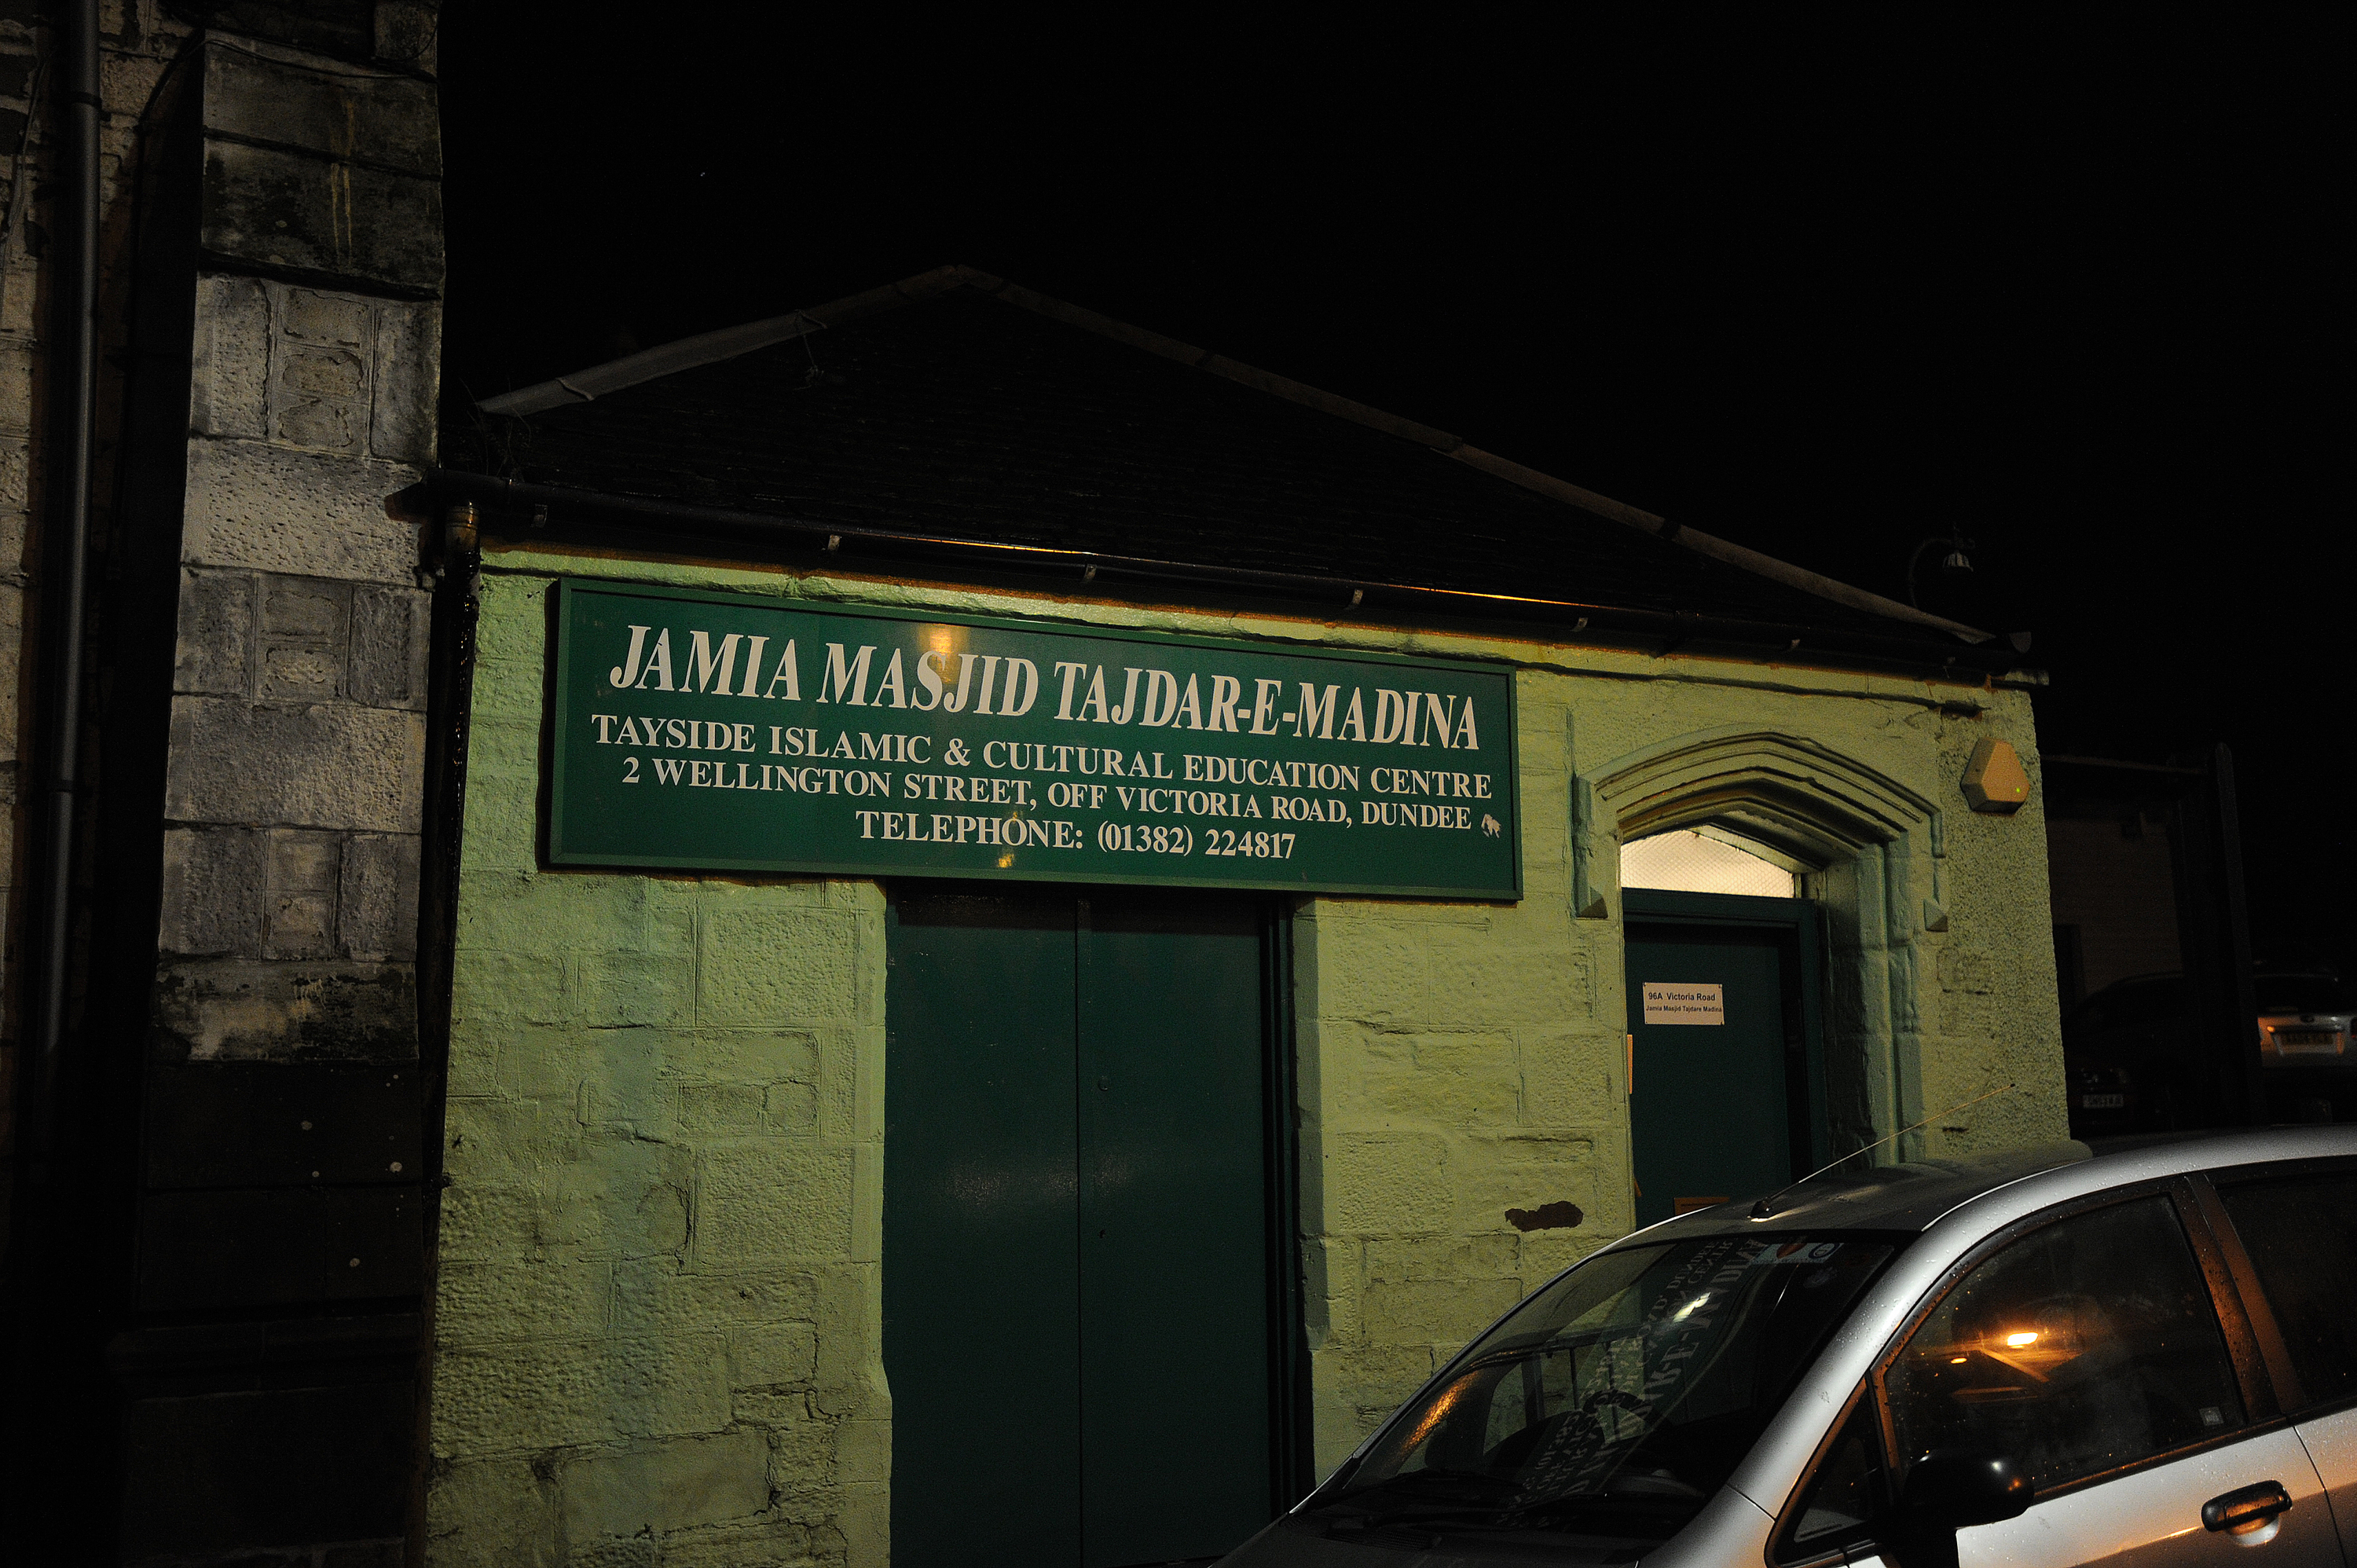 The entrance to the mosque.